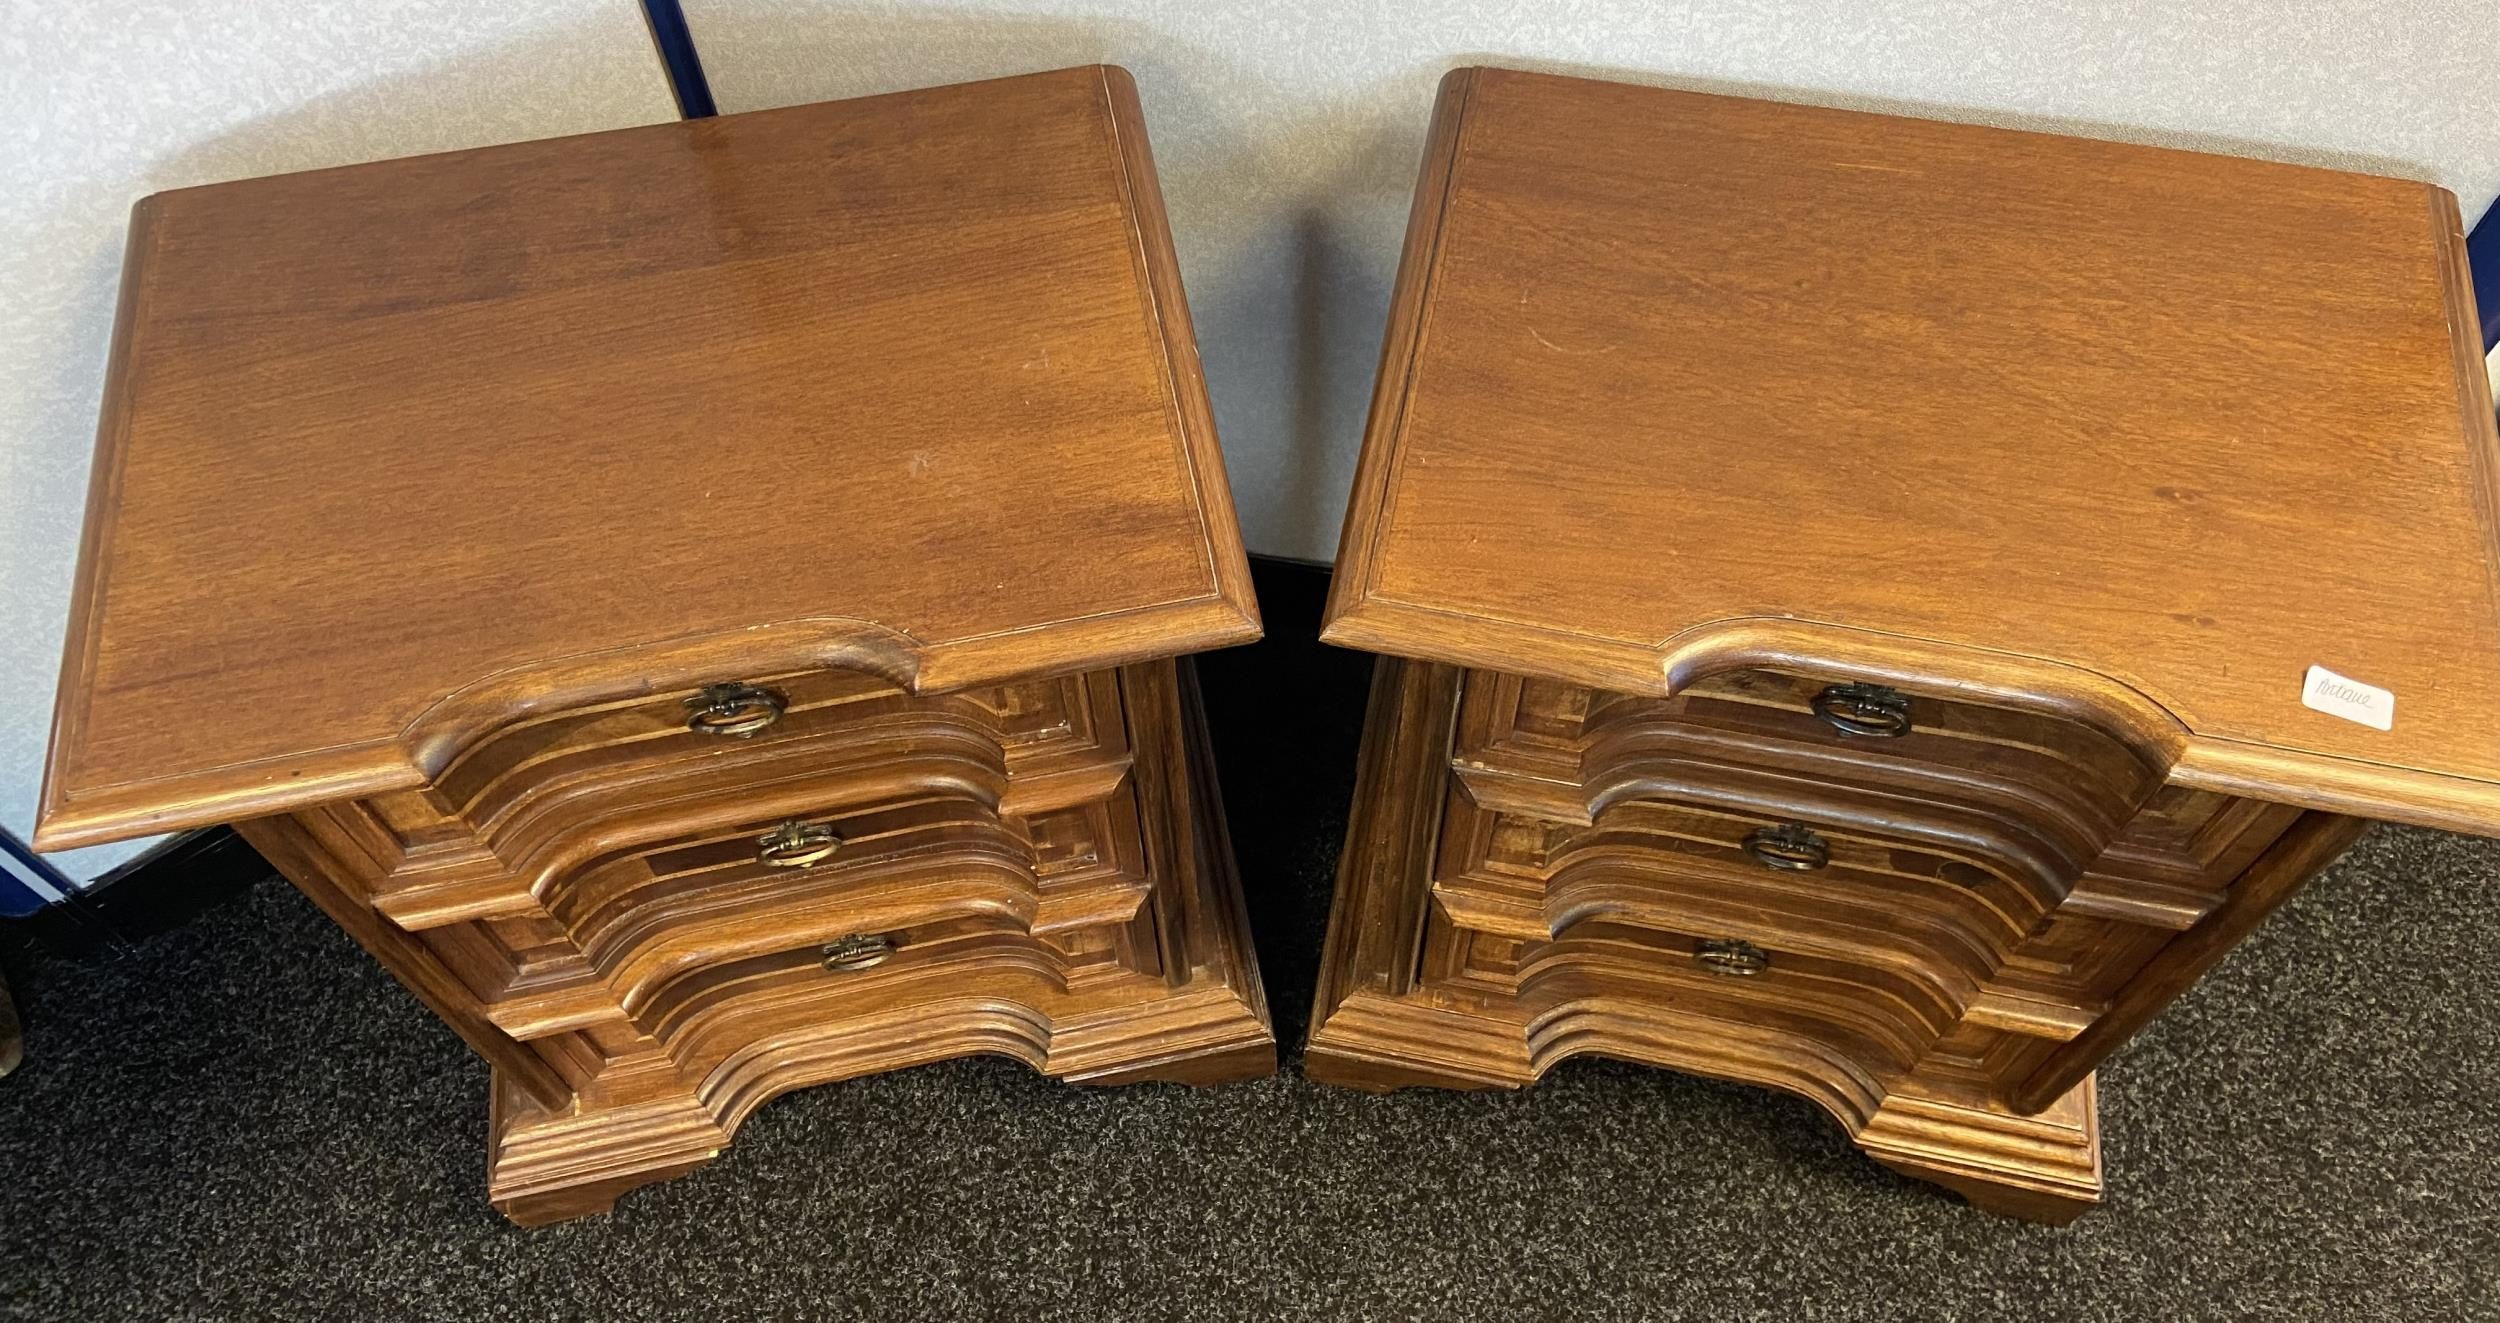 A Pair of reproduction antique style three drawer bedside chests. [68x60x40cm] - Image 3 of 4